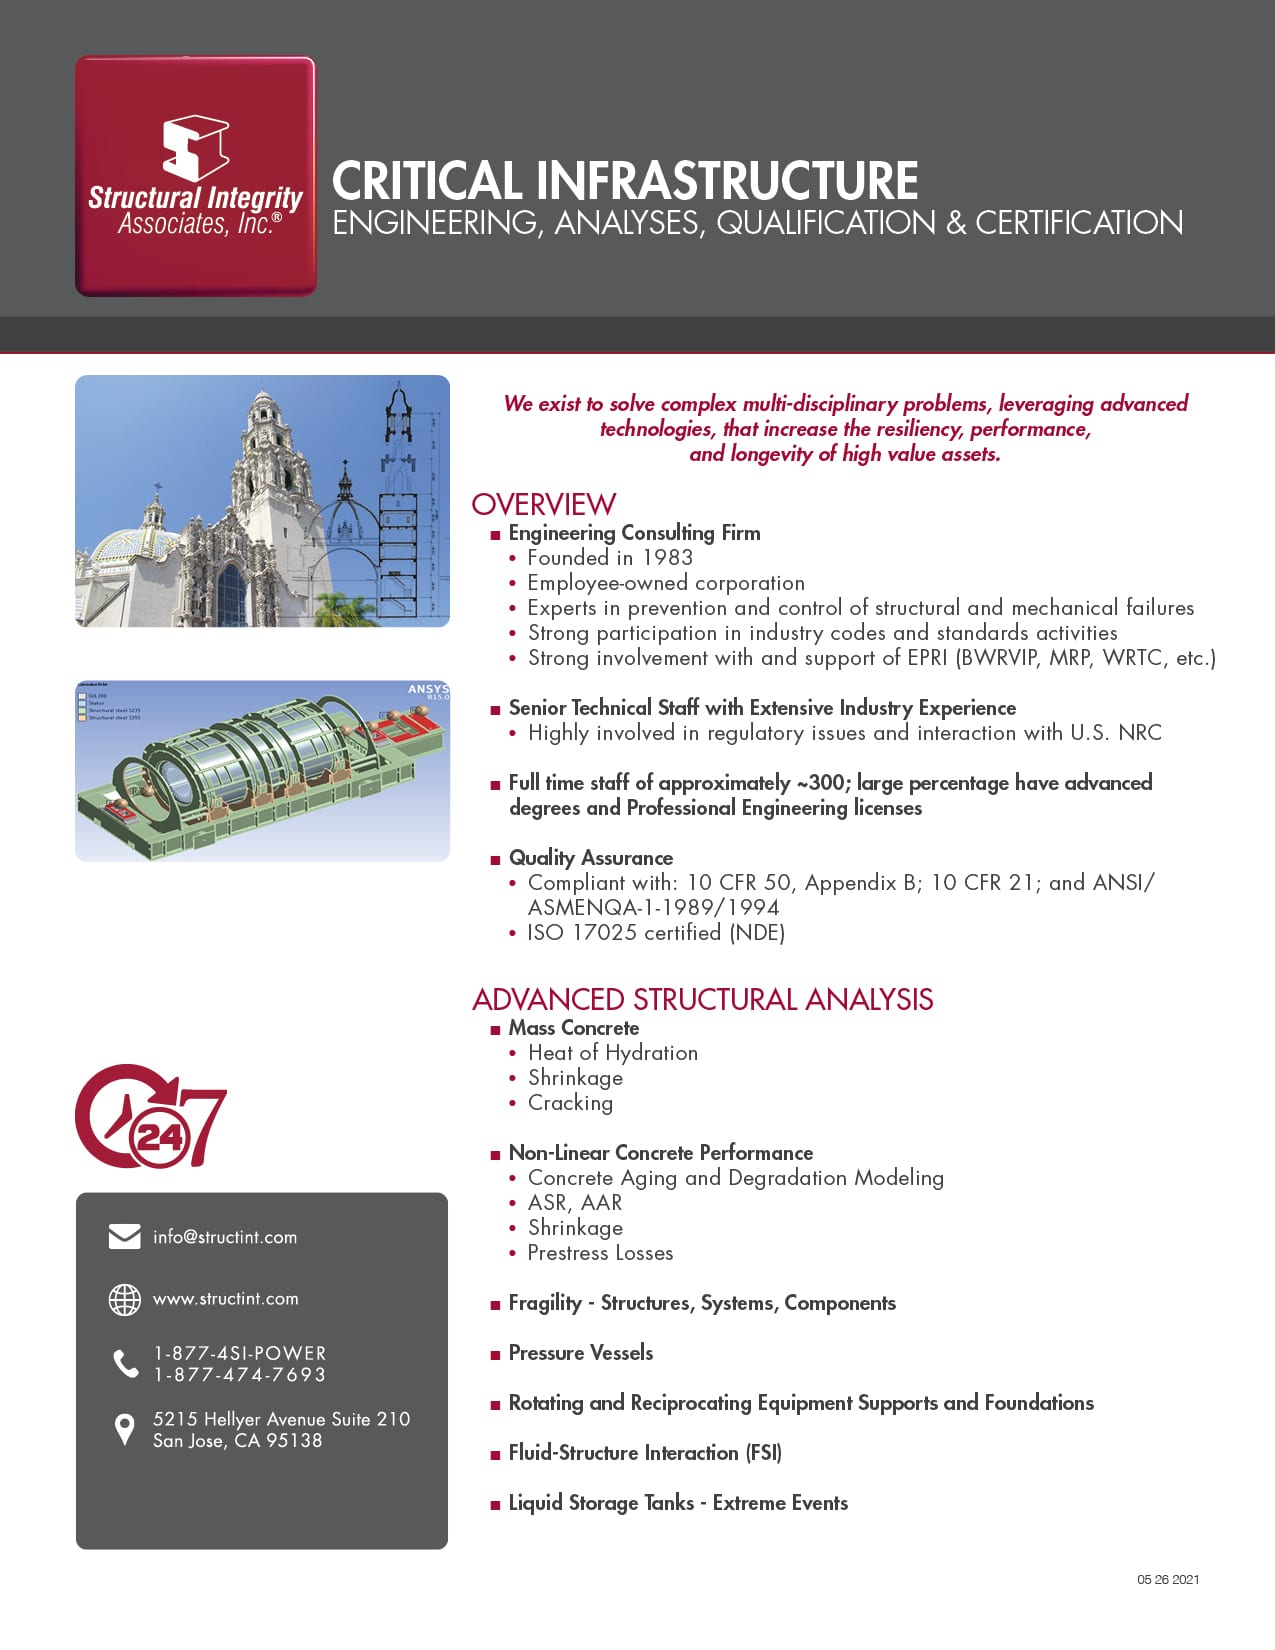 Critical Infrastructure - Engineering, Analyses, Qualification & Certification